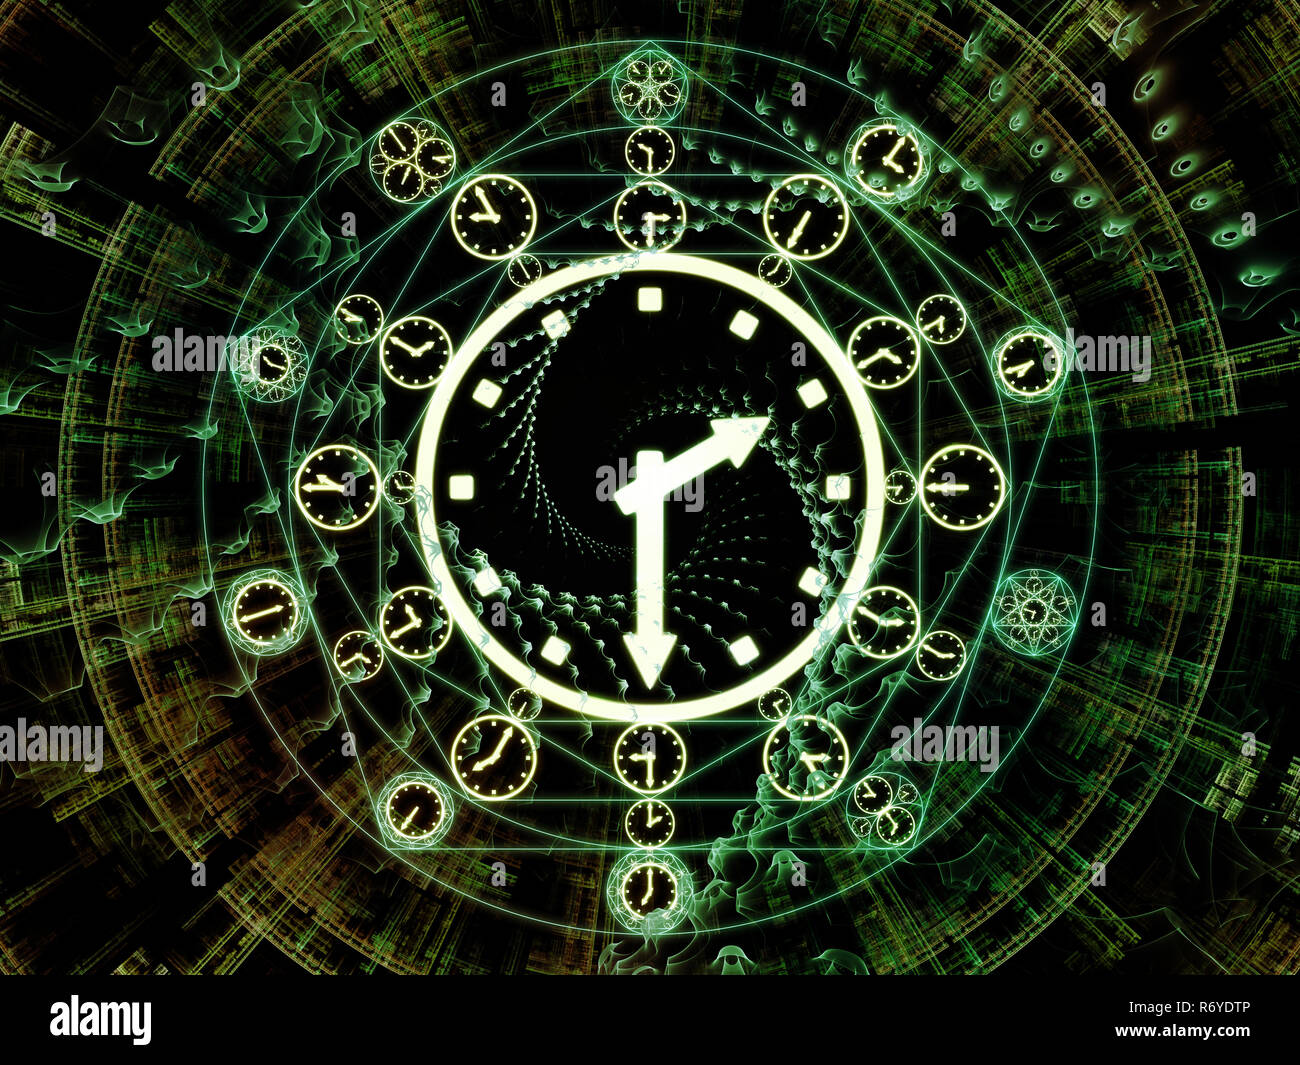 Vision of Times Past - Stock Image